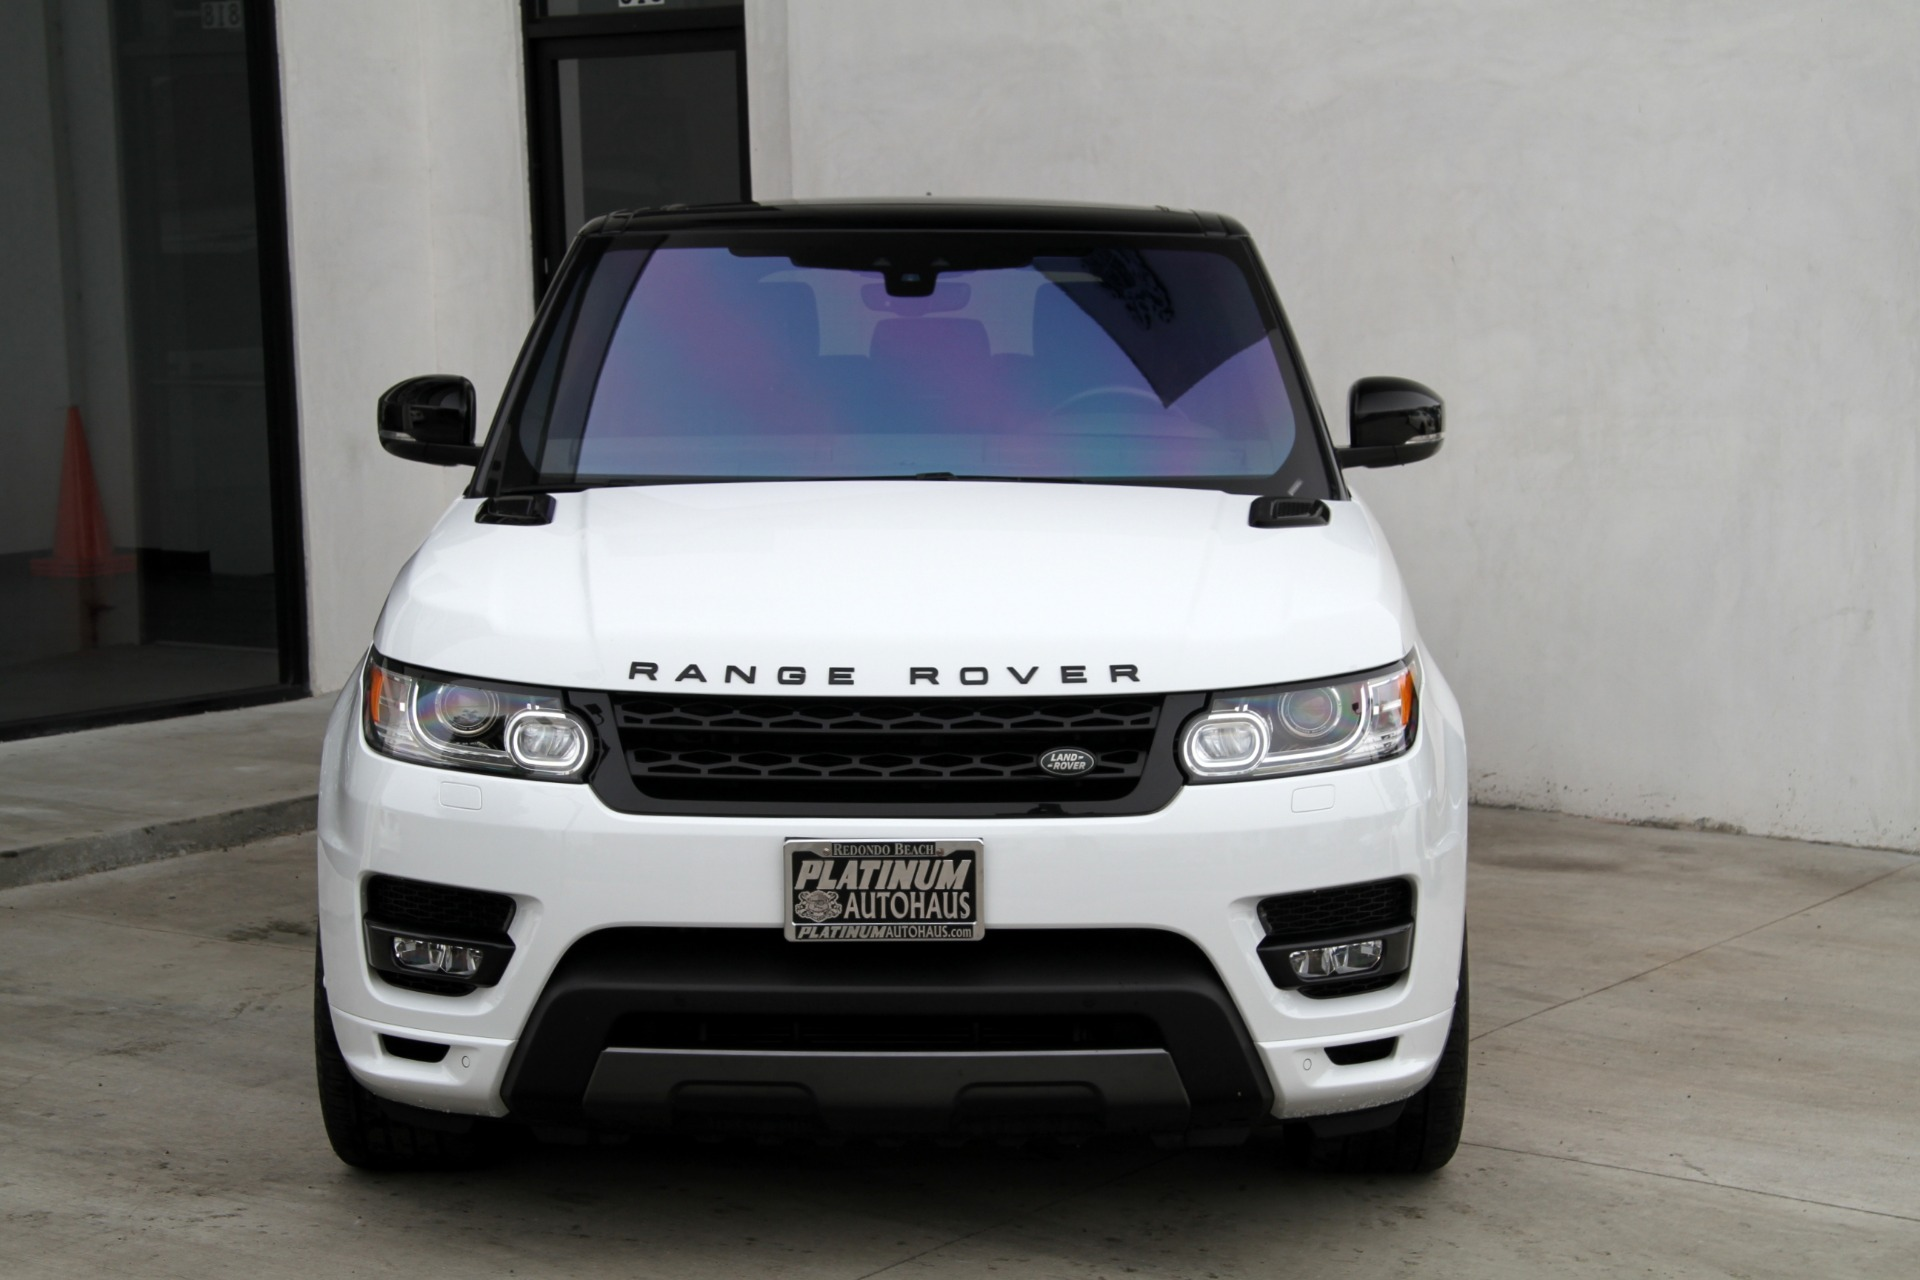 Land For Sale By Owner Near Me >> 2017 Land Rover Range Rover Sport HSE Dynamic Stock # 6293 for sale near Redondo Beach, CA | CA ...